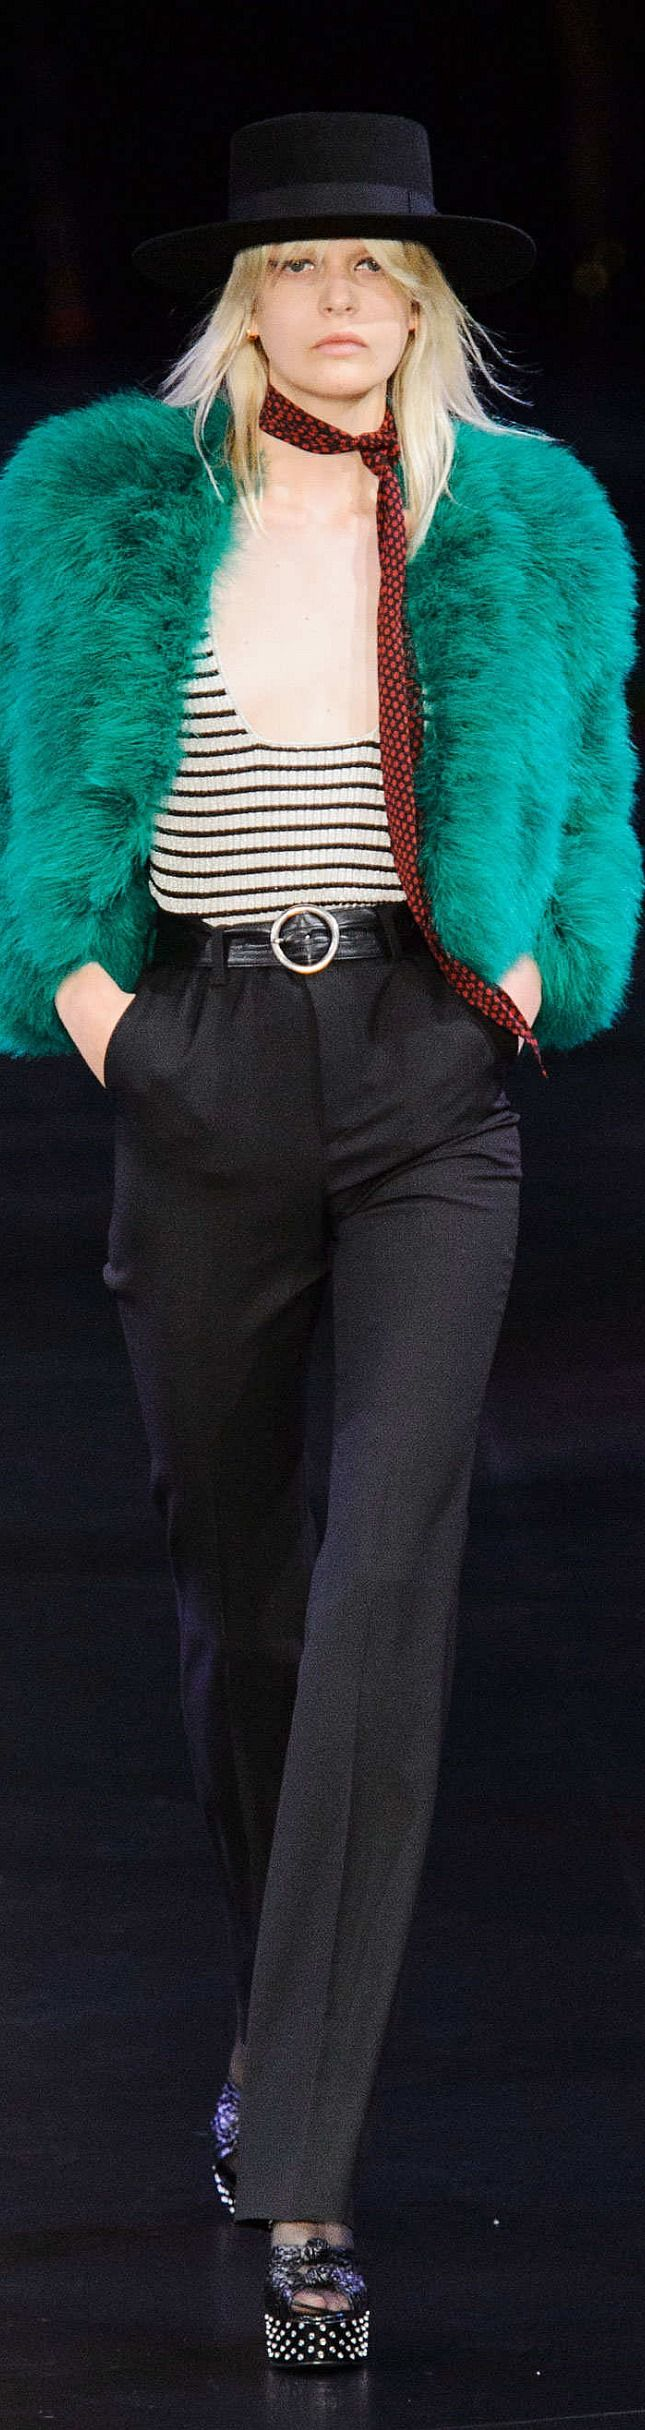 Saint Laurent Collection Spring 2015   The House of Beccaria~